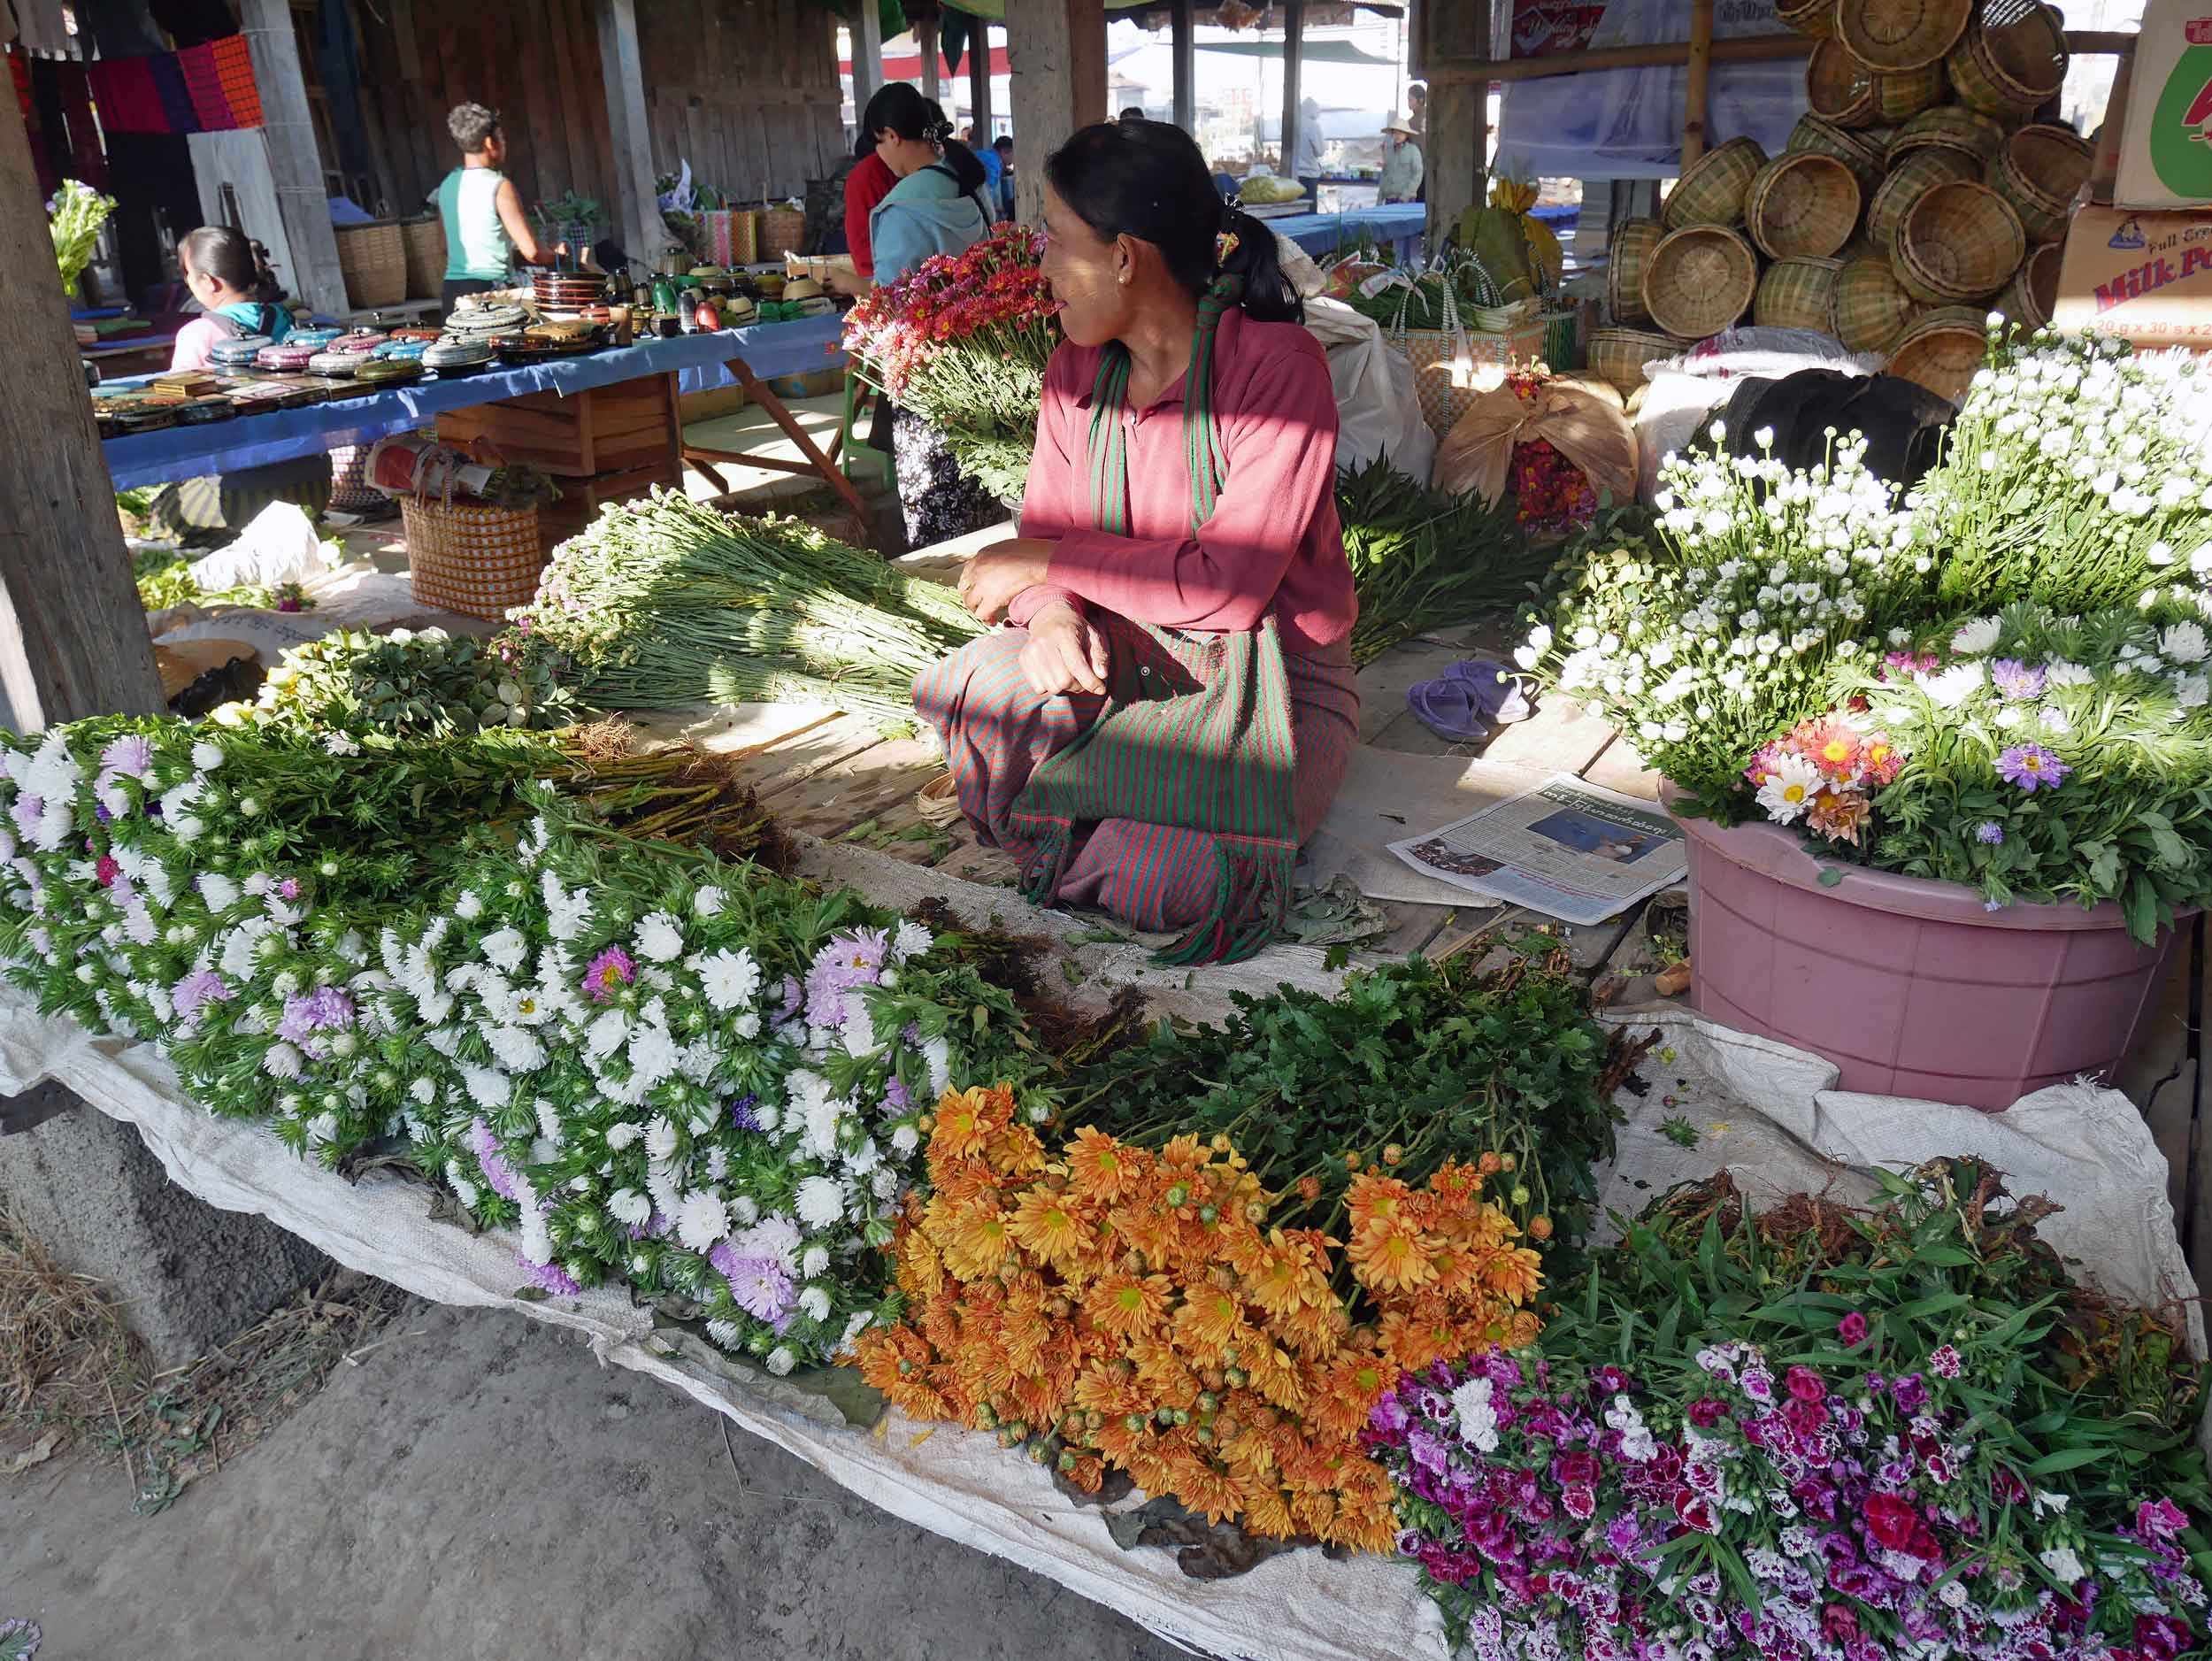 Vibrant fresh flowers are sold at market (note the roots still attached) (Feb 22).